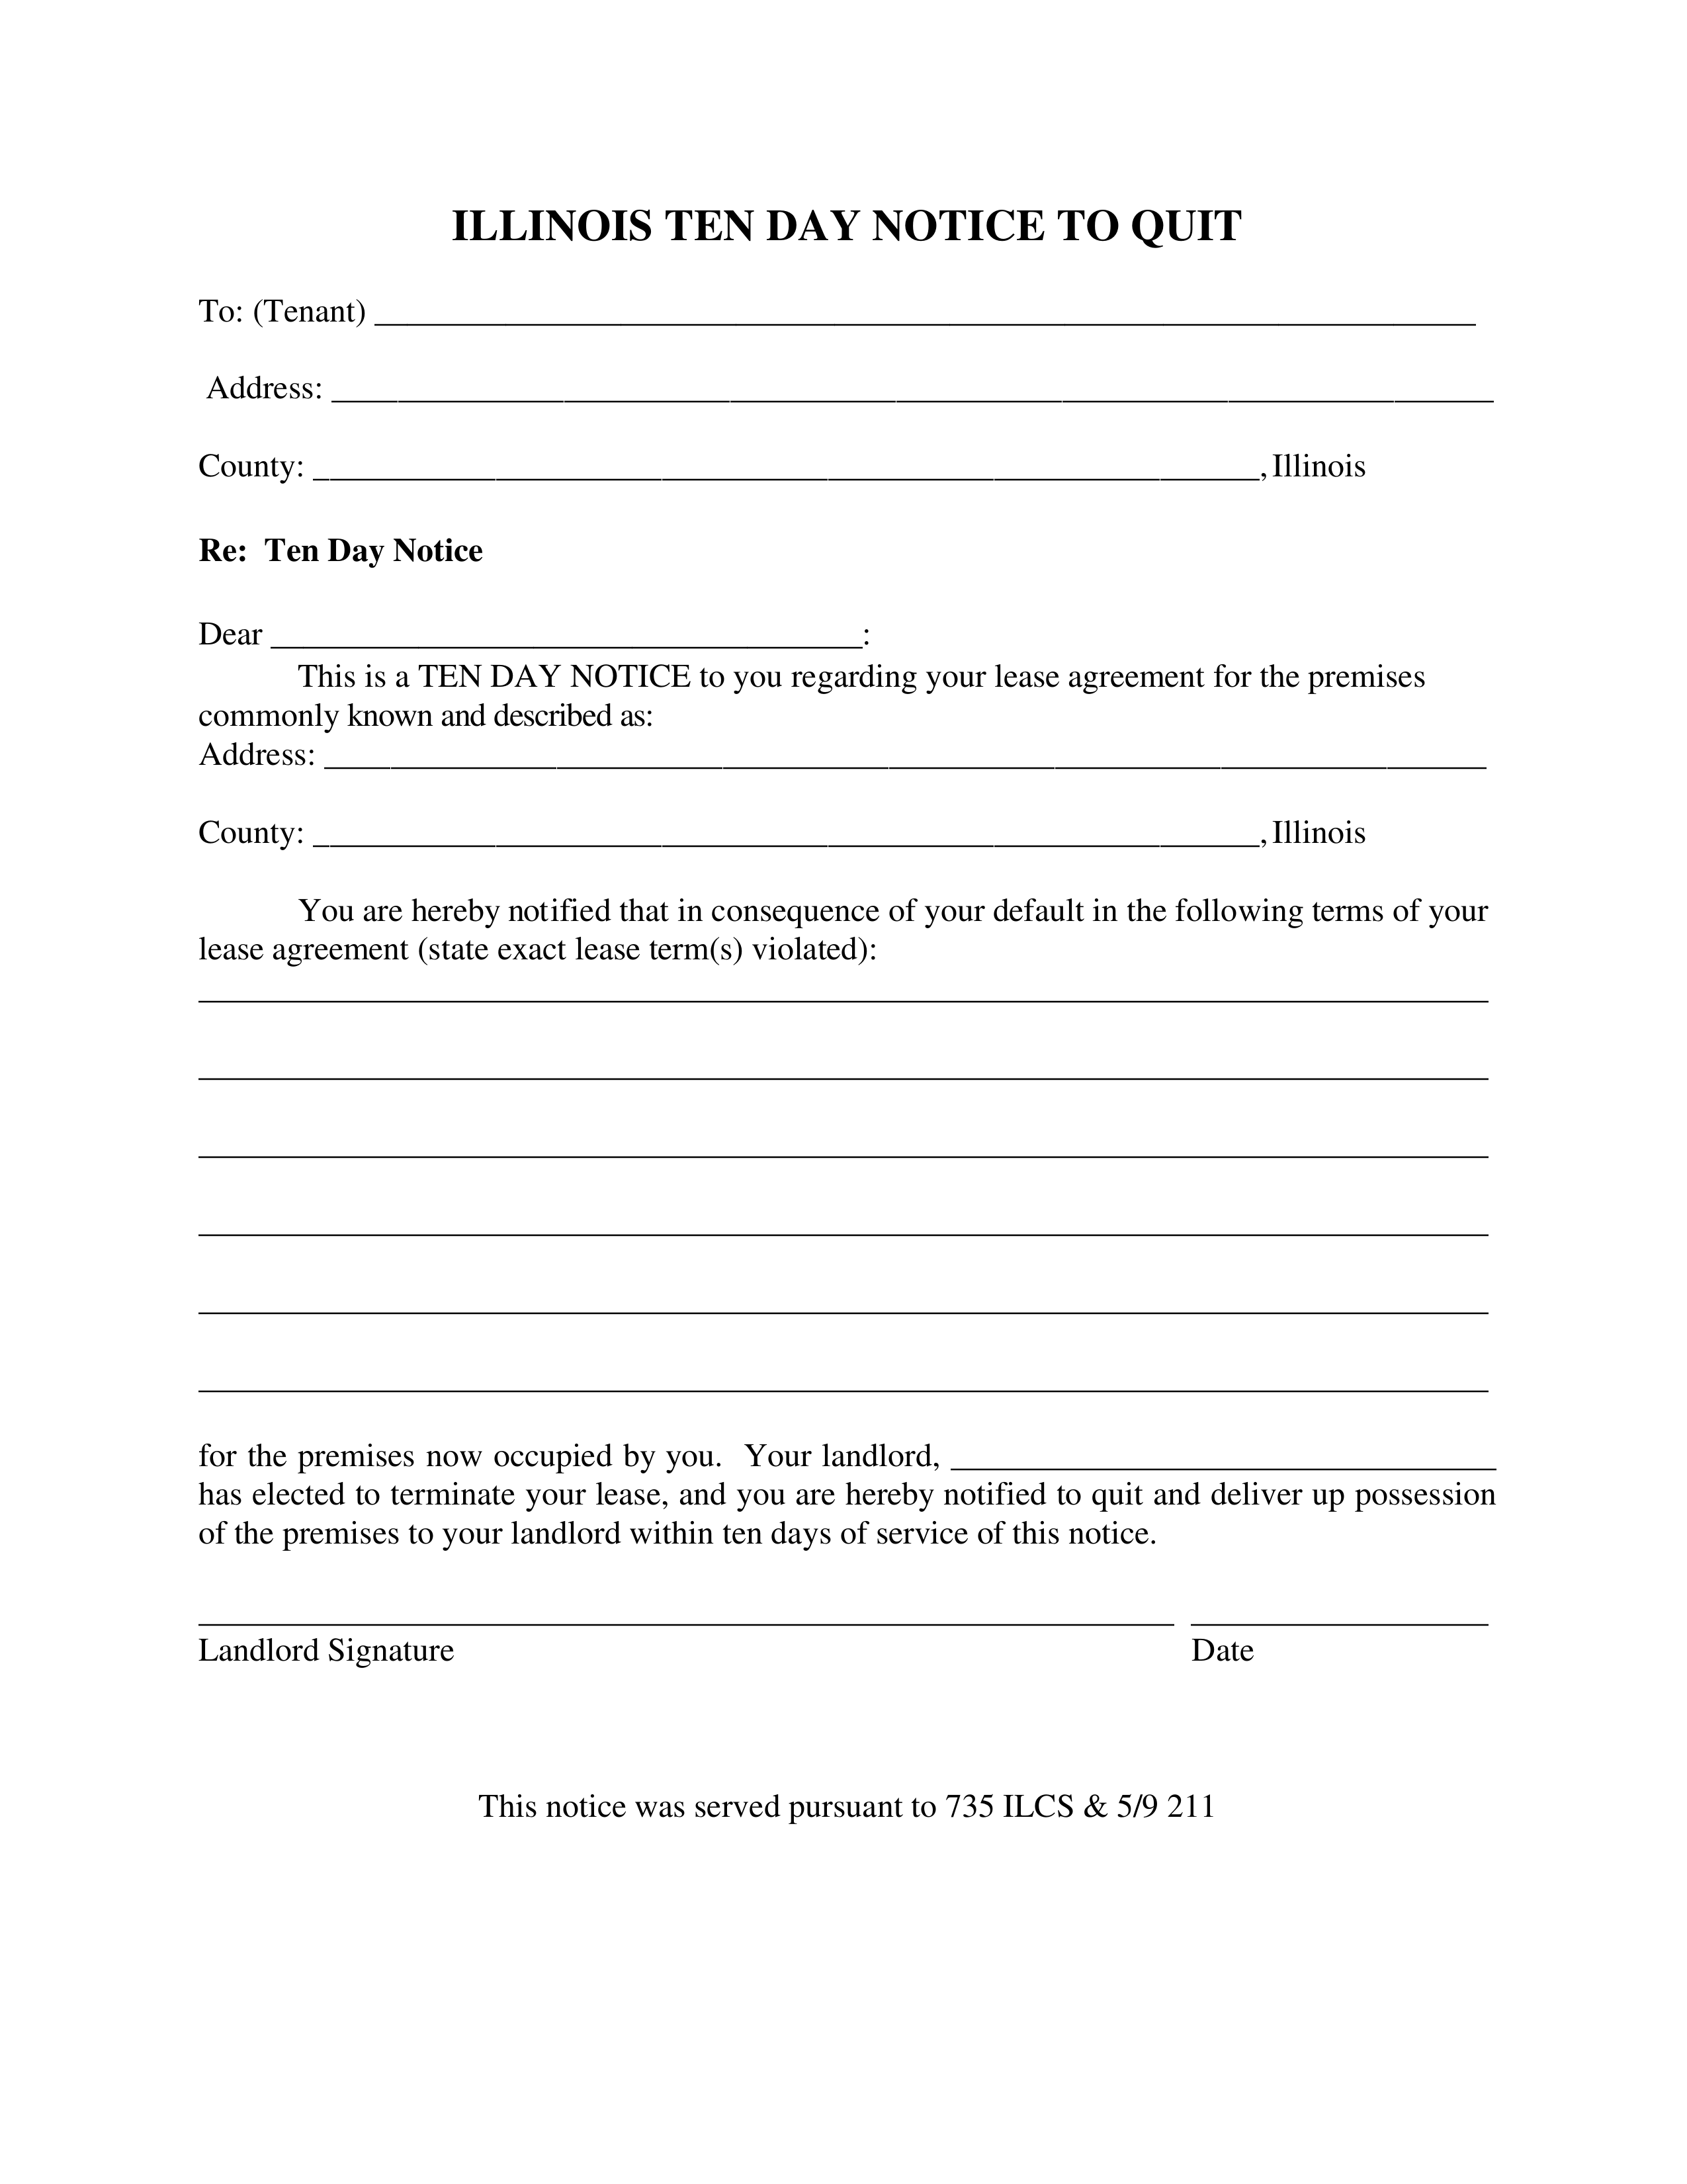 illinois-10-day-notice-to-quit-noncompliance-form Quit Letter Template on